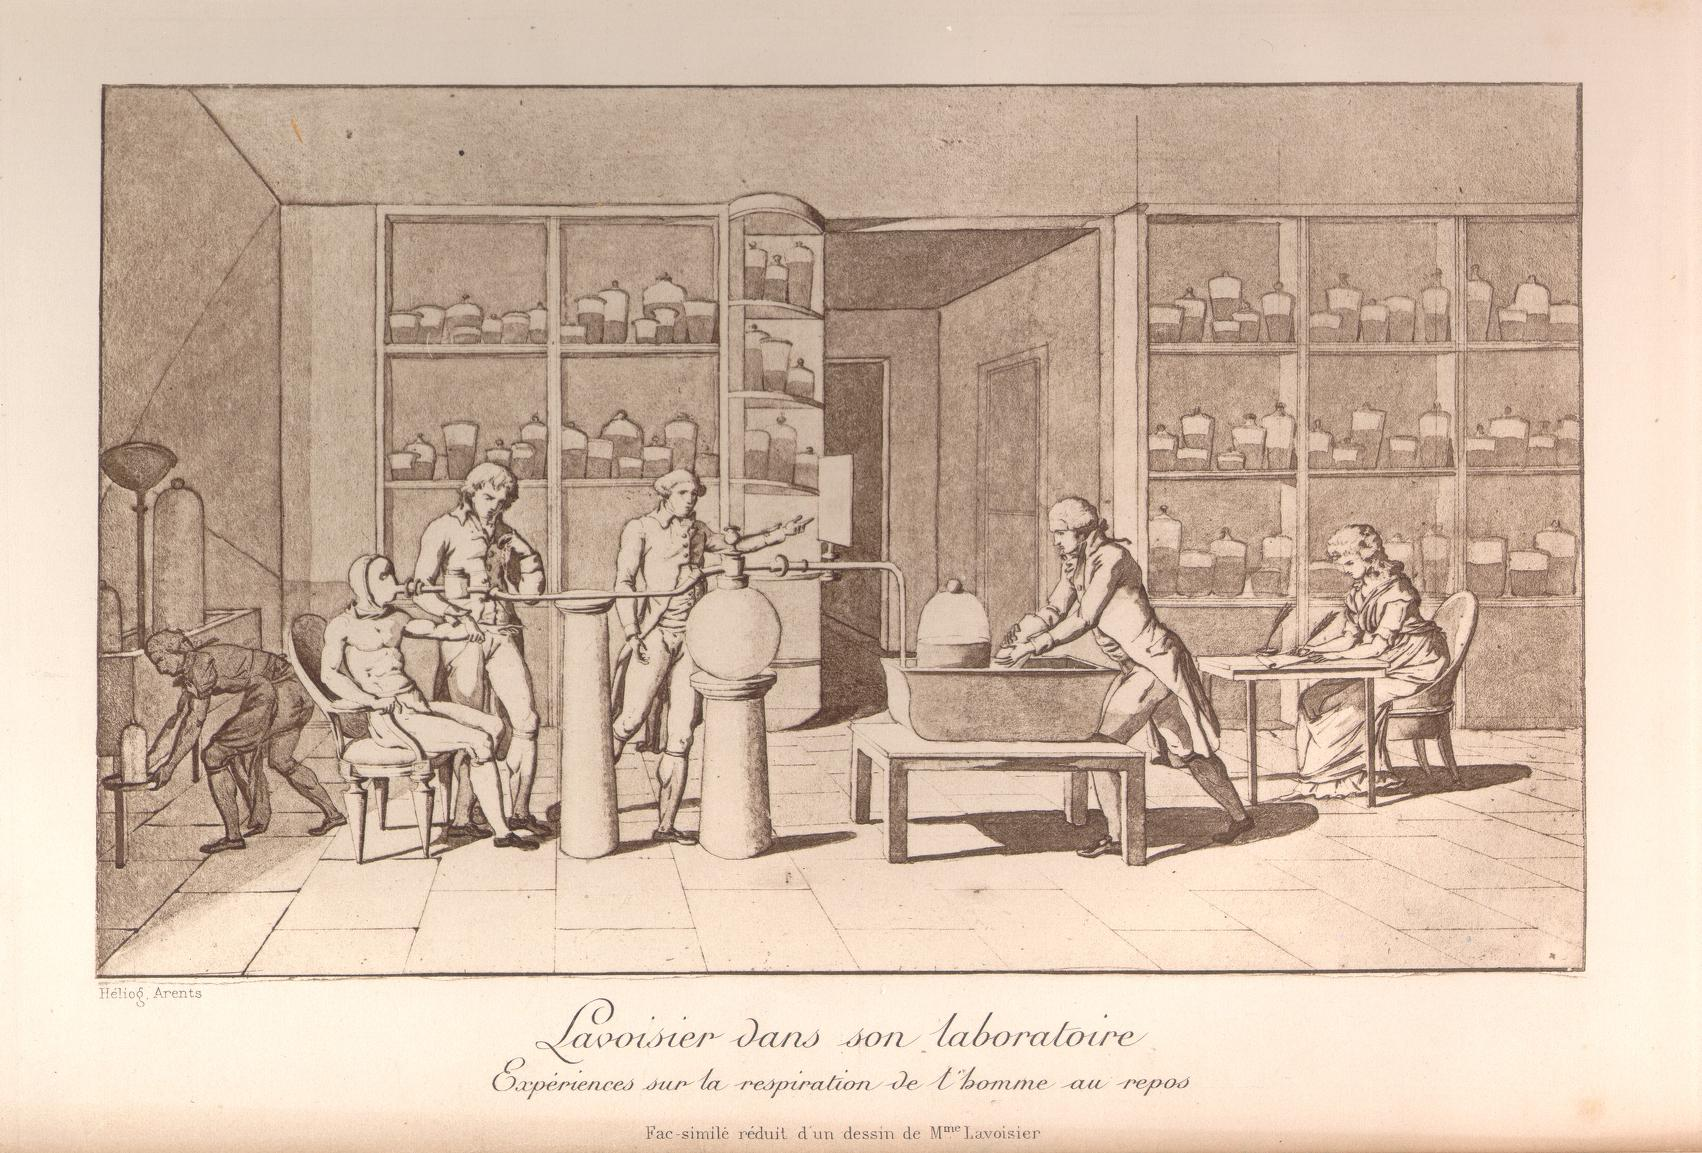 Antoine-Laurent Lavoisier conducts an experiment on human respiration in this drawing made by his wife, who depicted herself at the table on the far right.